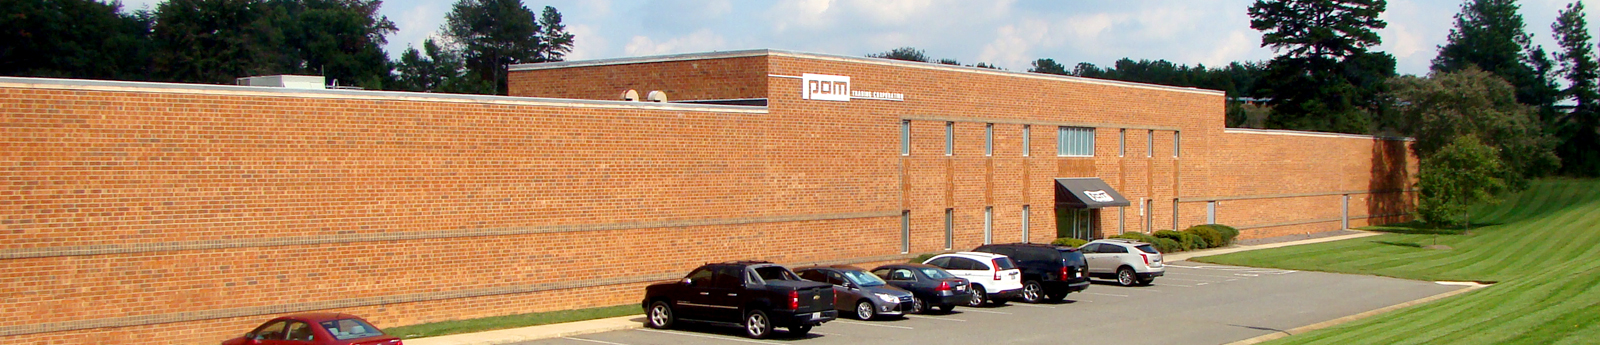 PAM Injection Molding division located central North Carolina